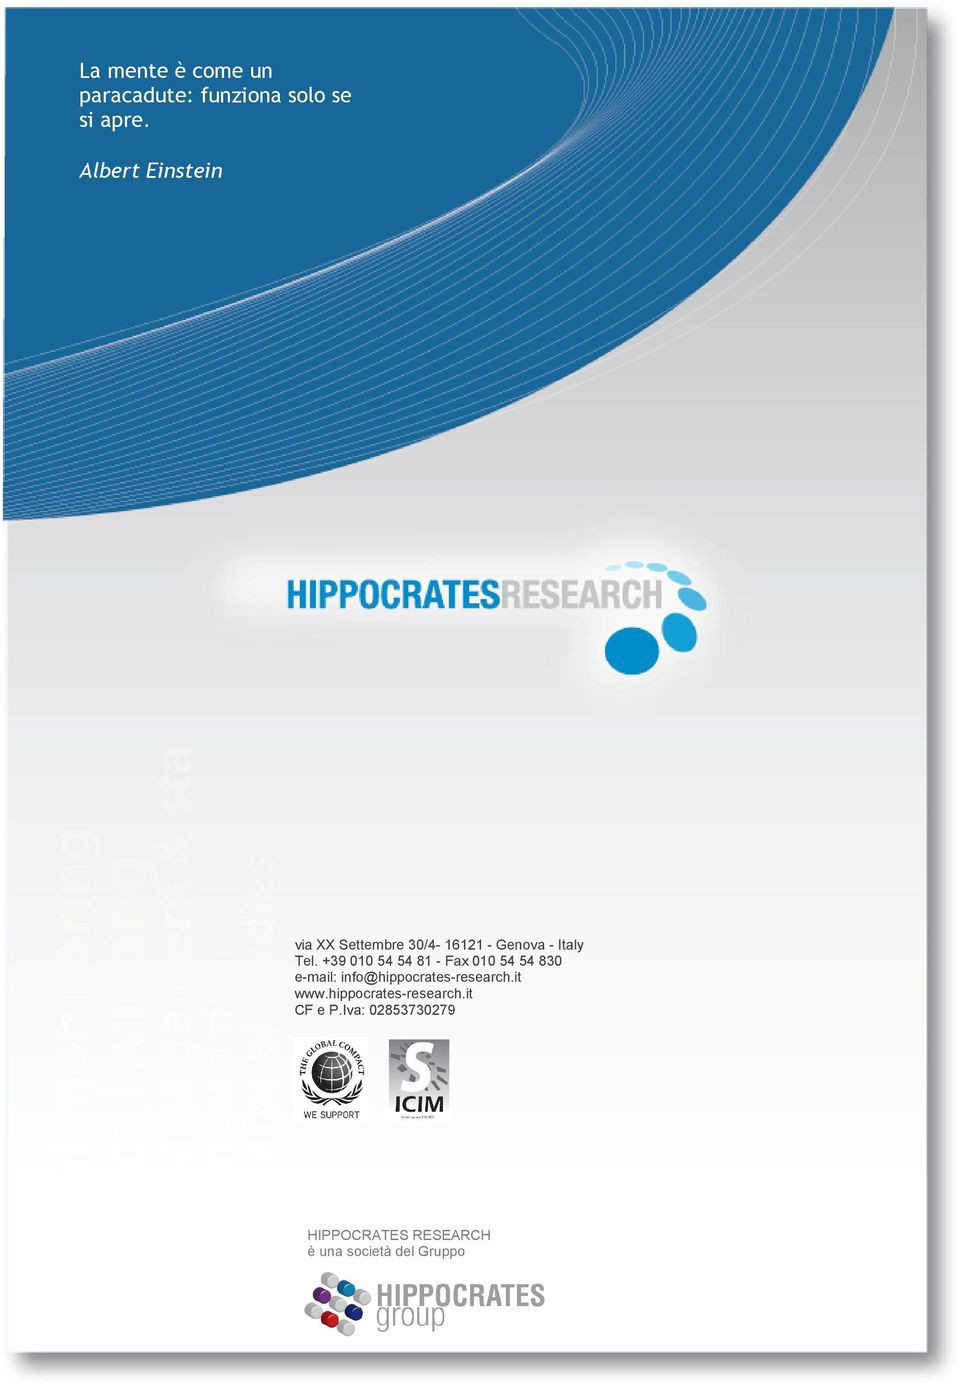 +39 010 54 54 81 - Fax 010 54 54 830 e-mail: info@hippocrates-research.